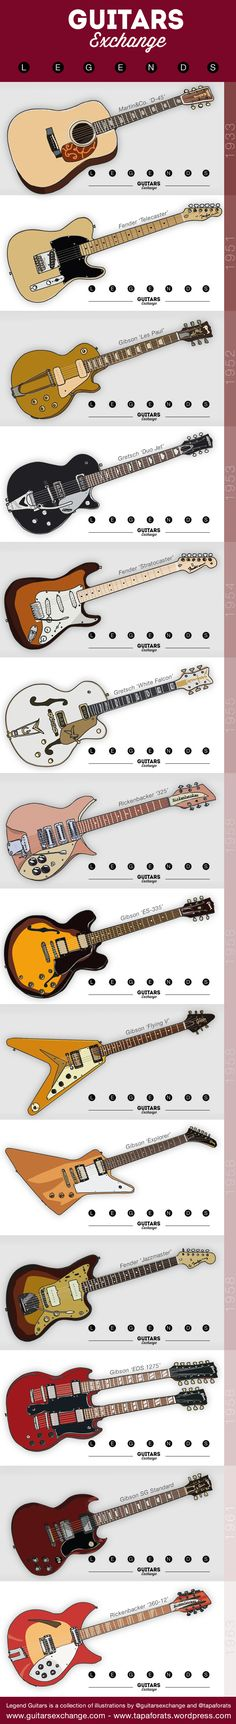 Collection of 14 illustrated and iconic #guitars -www.tapaforats.wordpress.com @guitarsexchange #sketch #infographics #fender #gibson #gretsch #rickenbacker